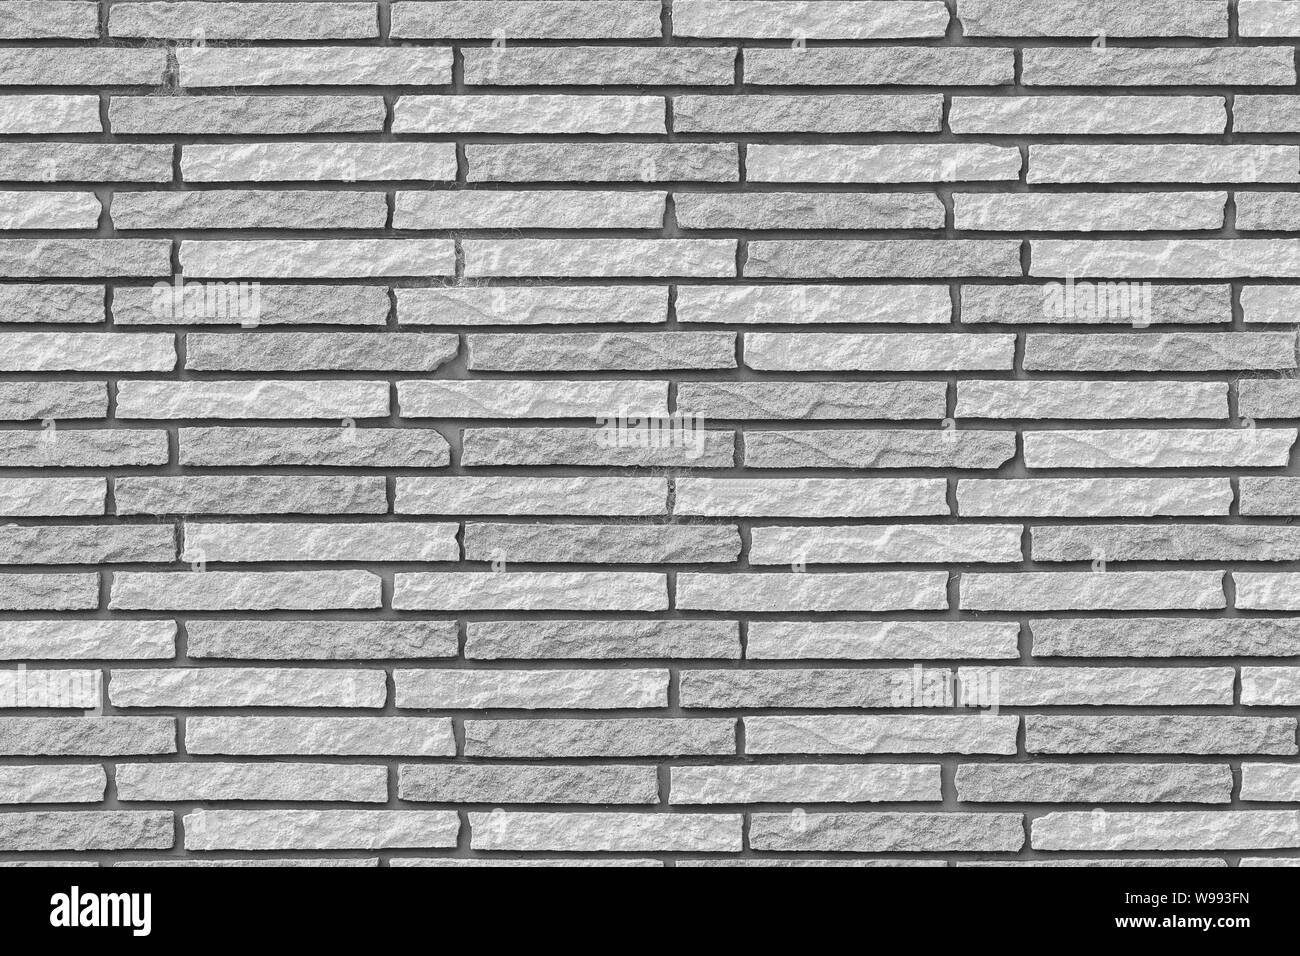 Modern Concrete Wall Pattern Texture For Background Stock Photo Alamy